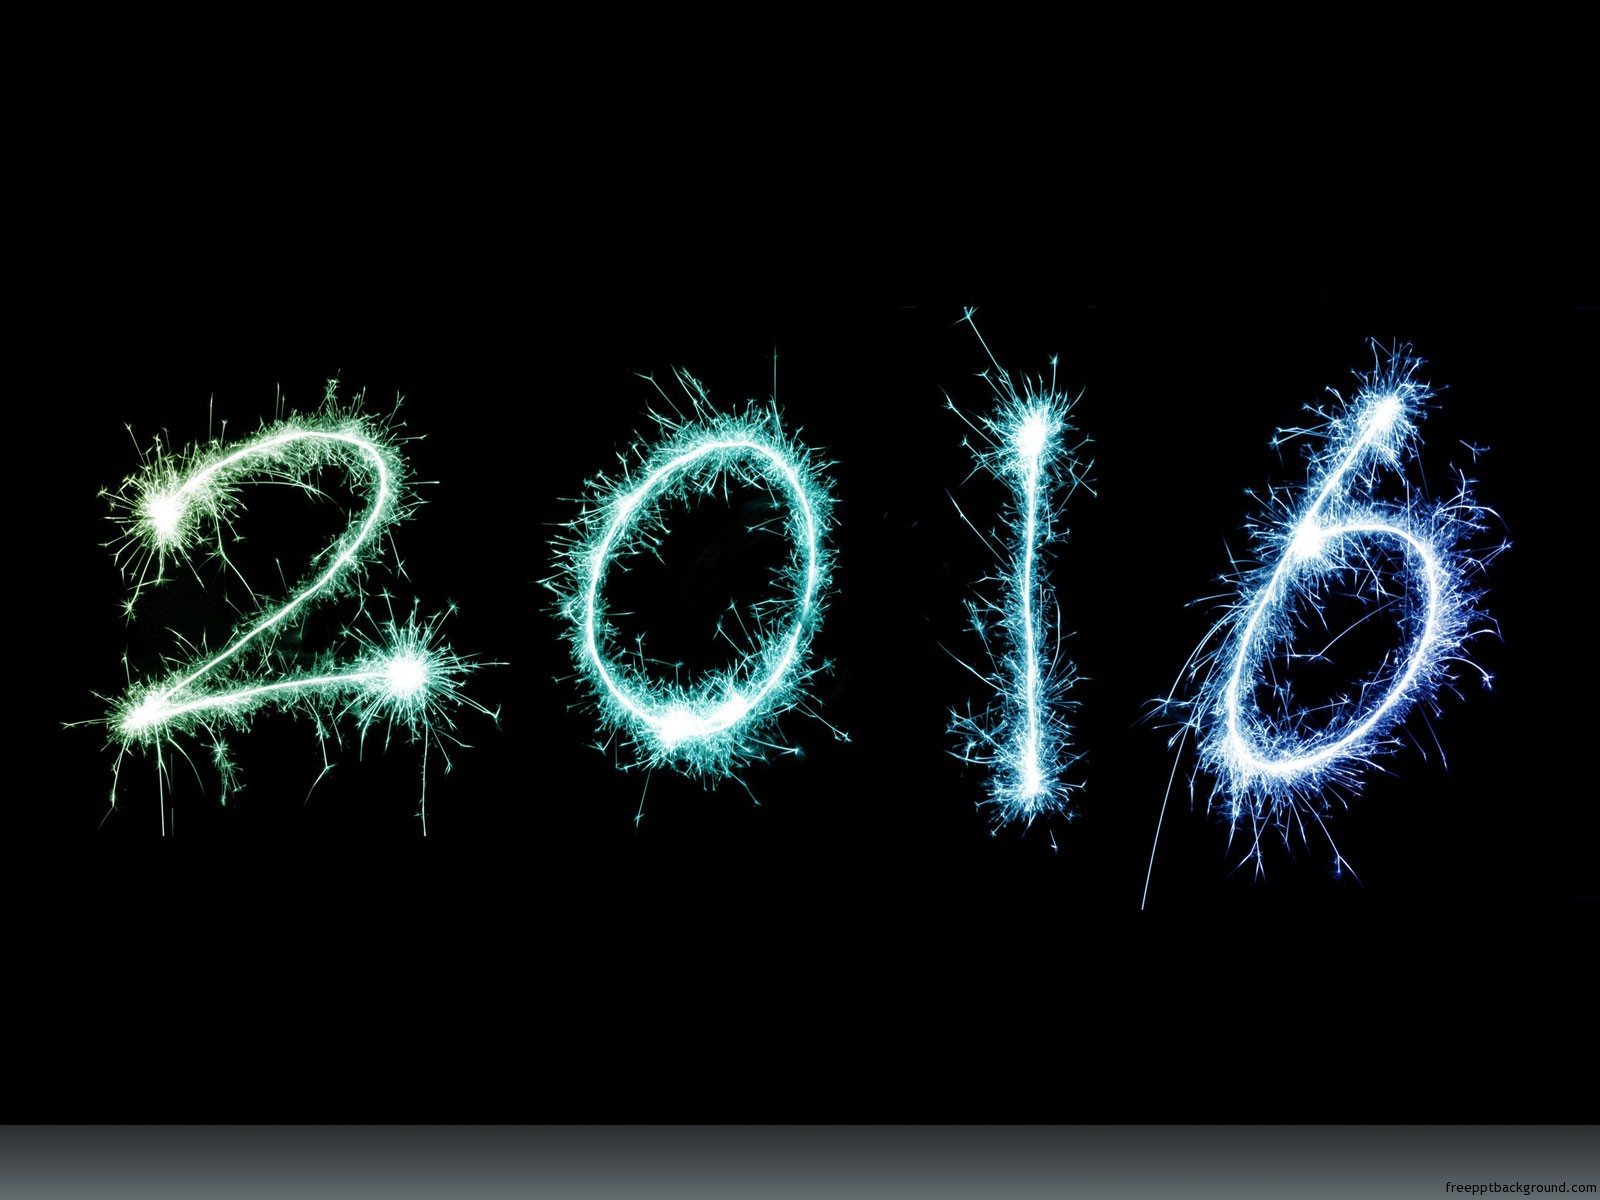 powerpoint backgrounds daily updated free powerpoint backgrounds happy new year 2016 image